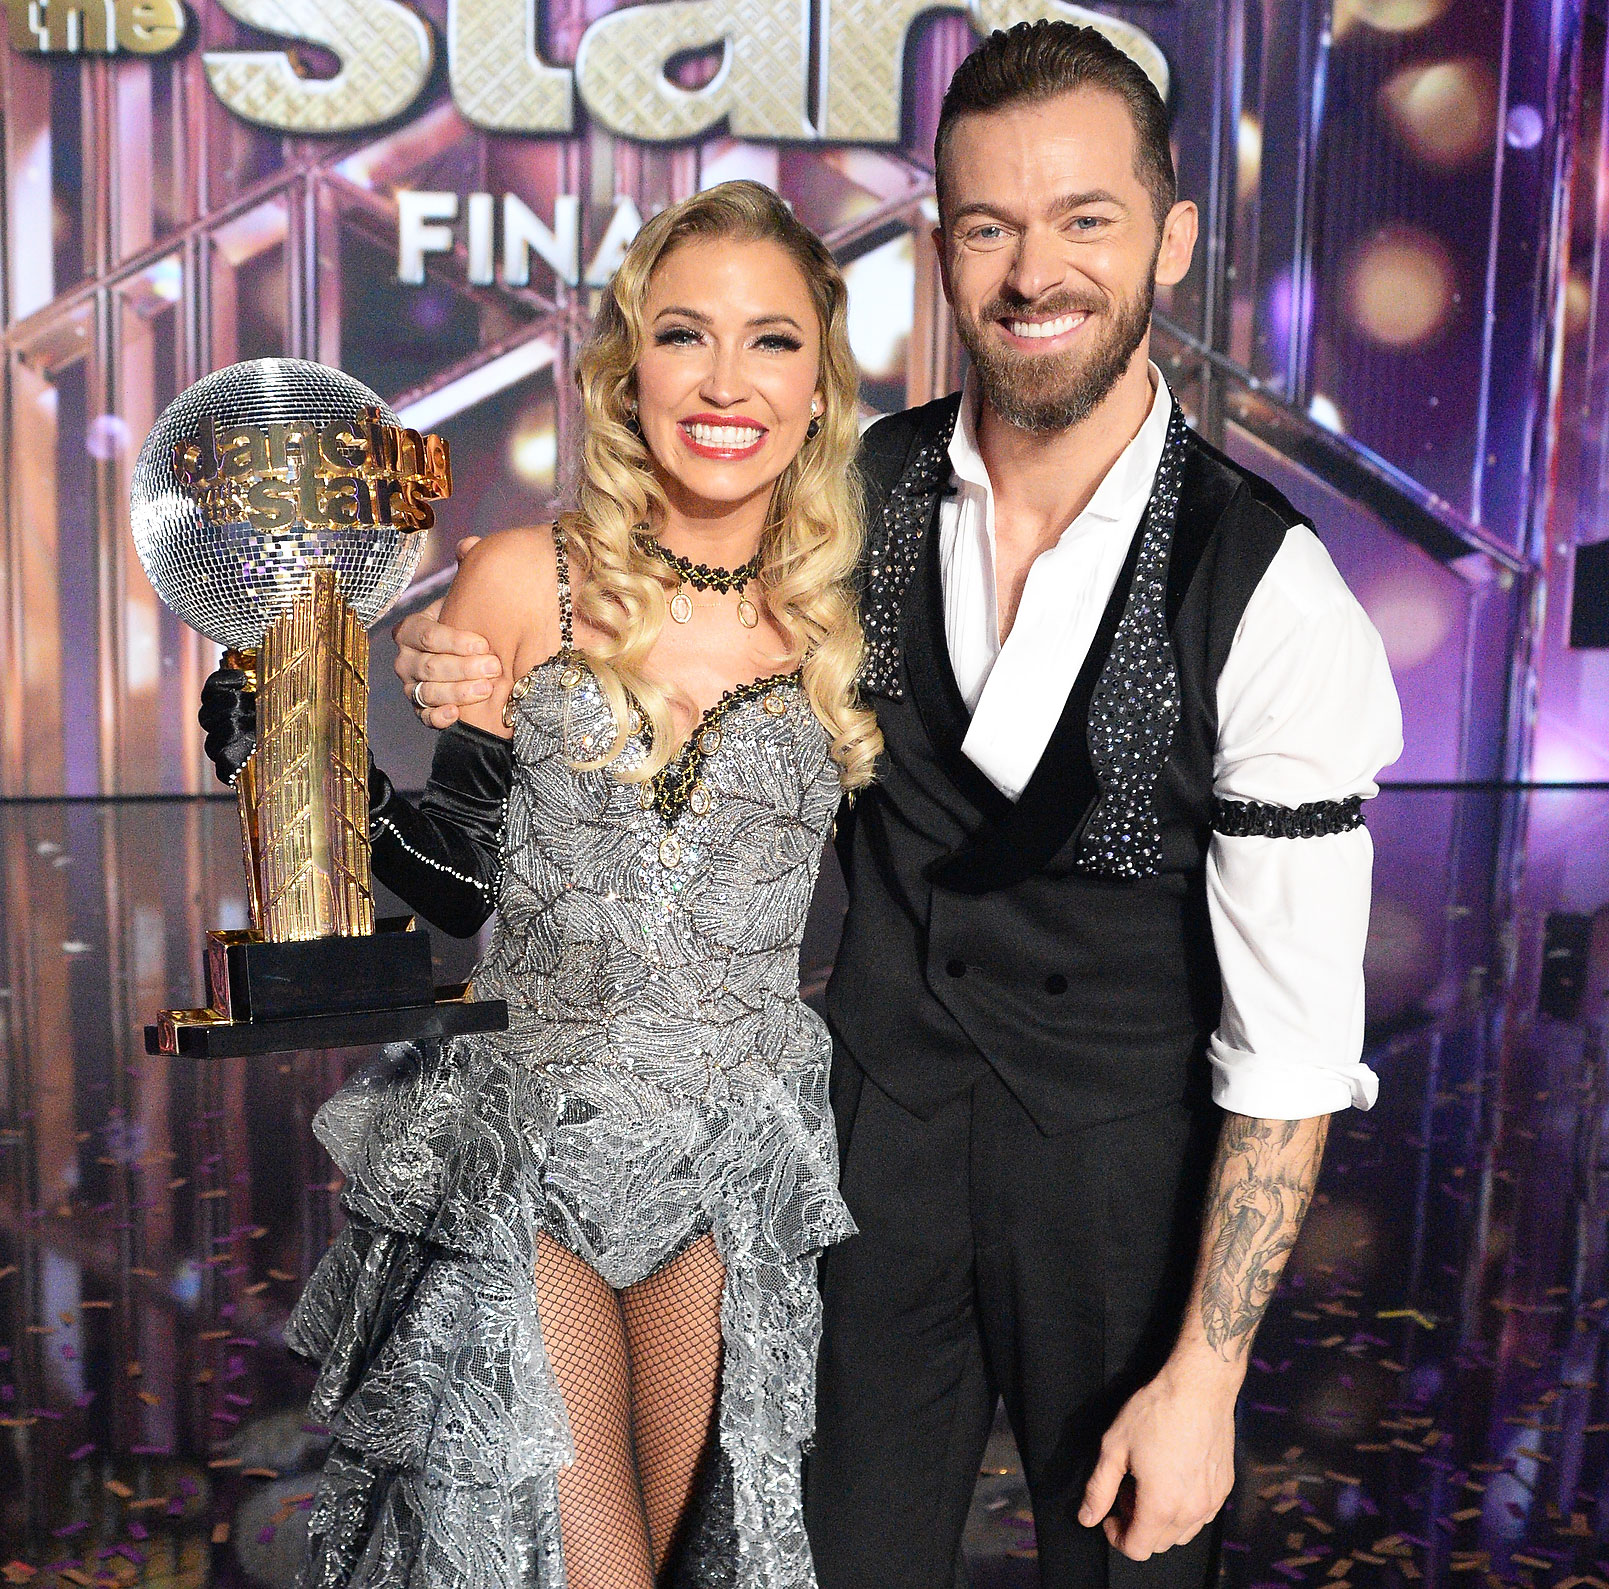 Kaitlyn Bristowe Reveals Whether She Got a Chance to Speak to Carrie Ann Inaba After Dancing With The Stars Win